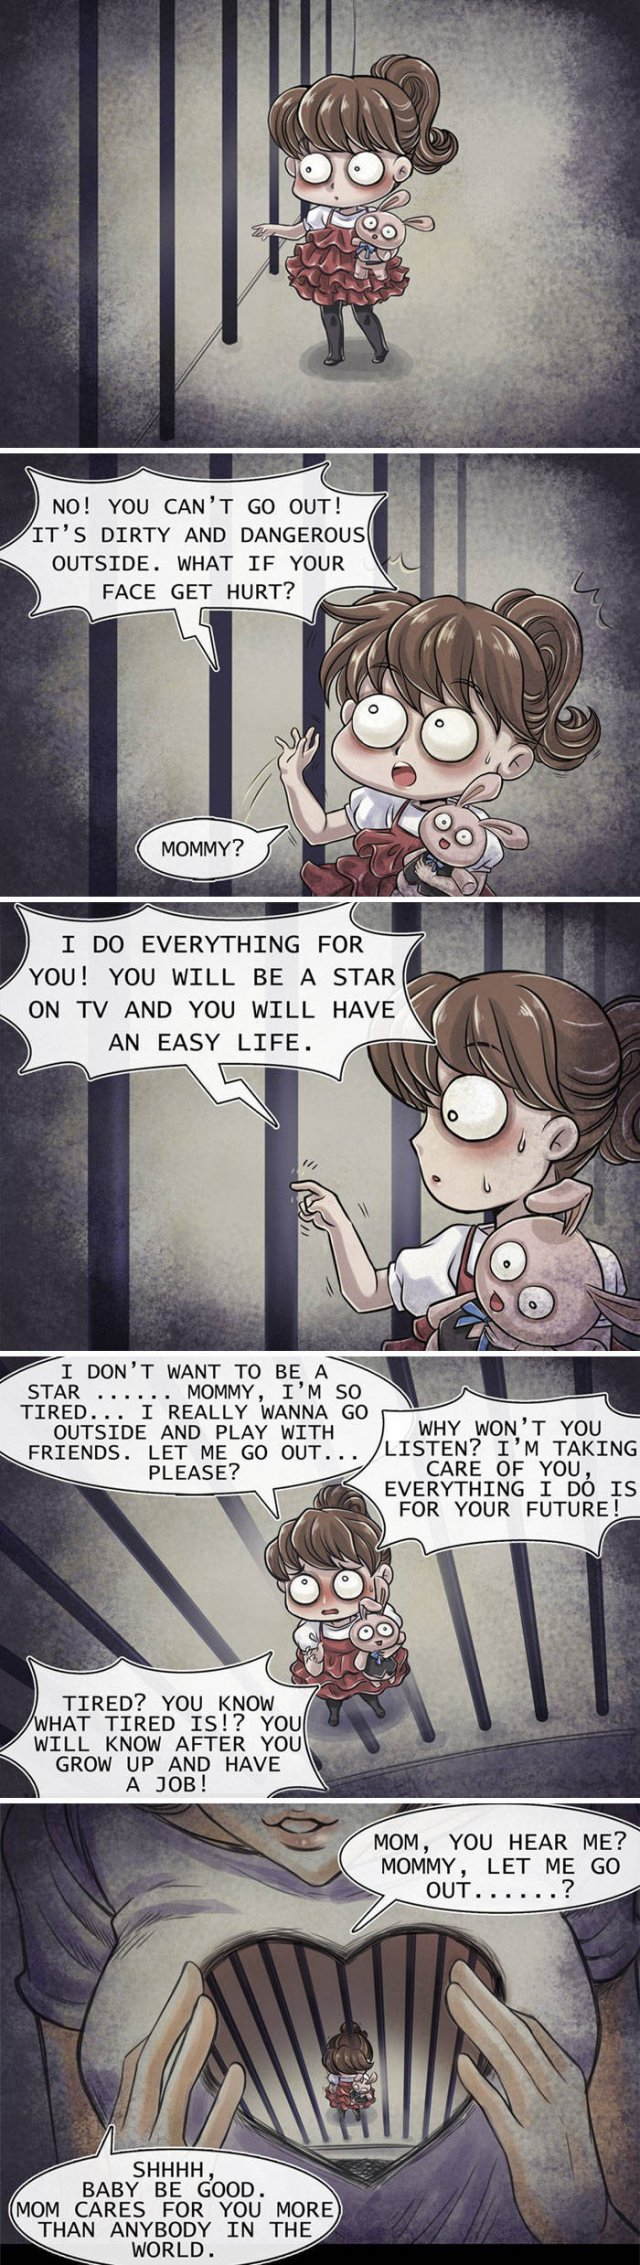 Very Scary Horror Comics With Unexpected Endings (18 pics)